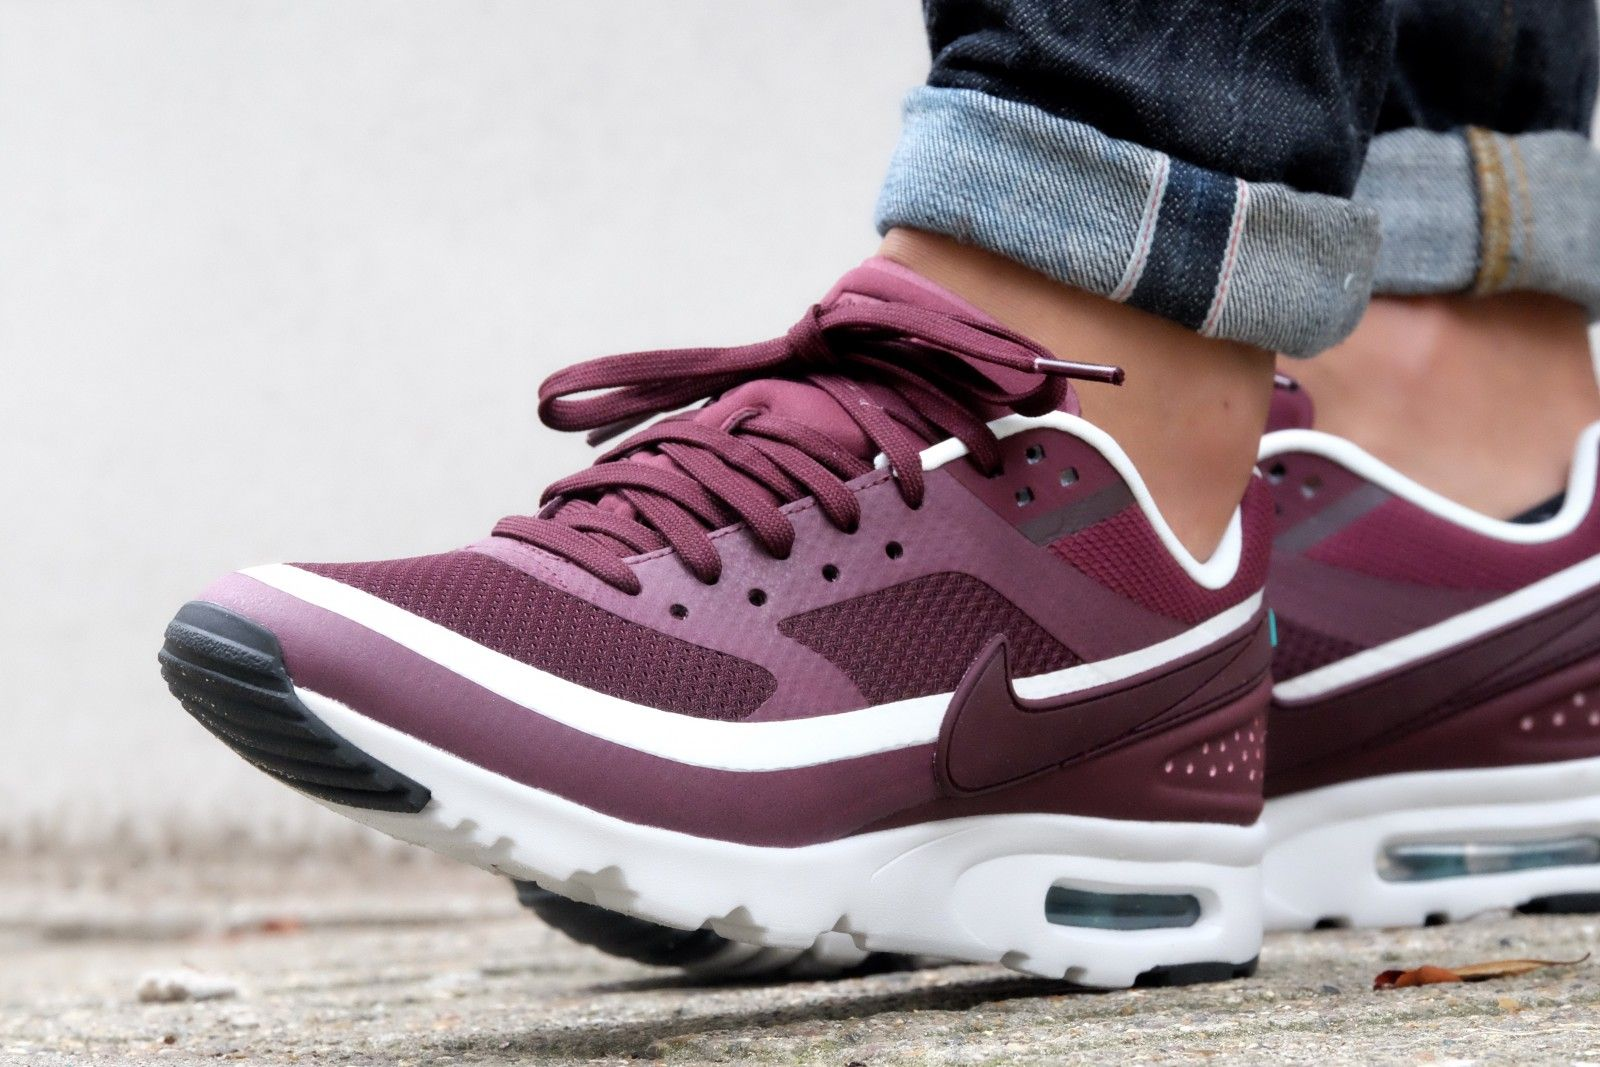 Nike WMNS Air Max BW Ultra Night Maroon Summit White | Nike